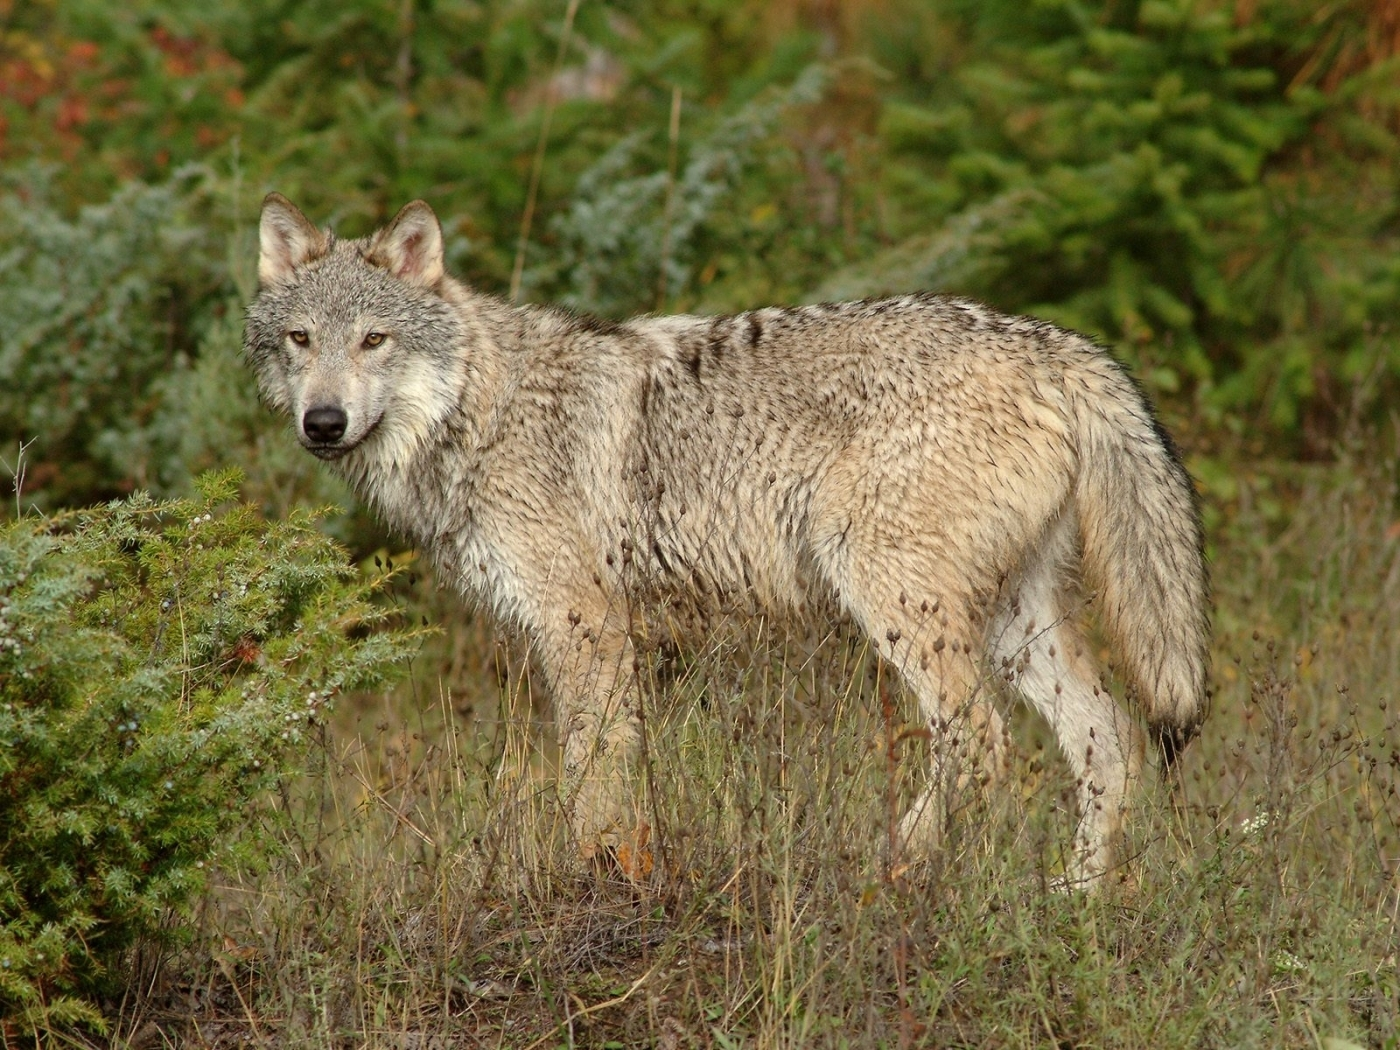 42696 download wallpaper Animals, Wolfs screensavers and pictures for free